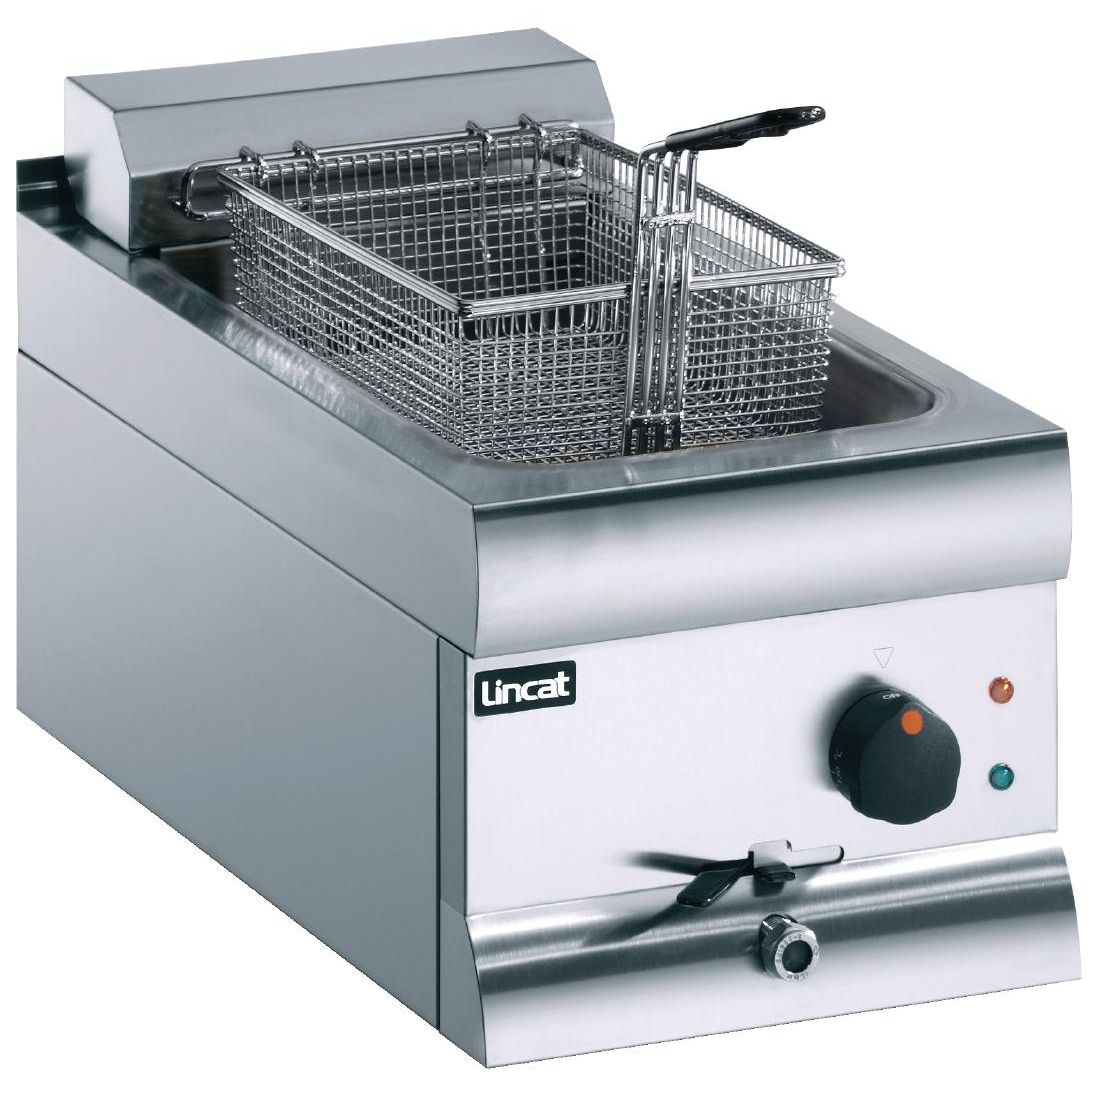 Lincat Silverlink Single Tank Countertop Fryer DF33